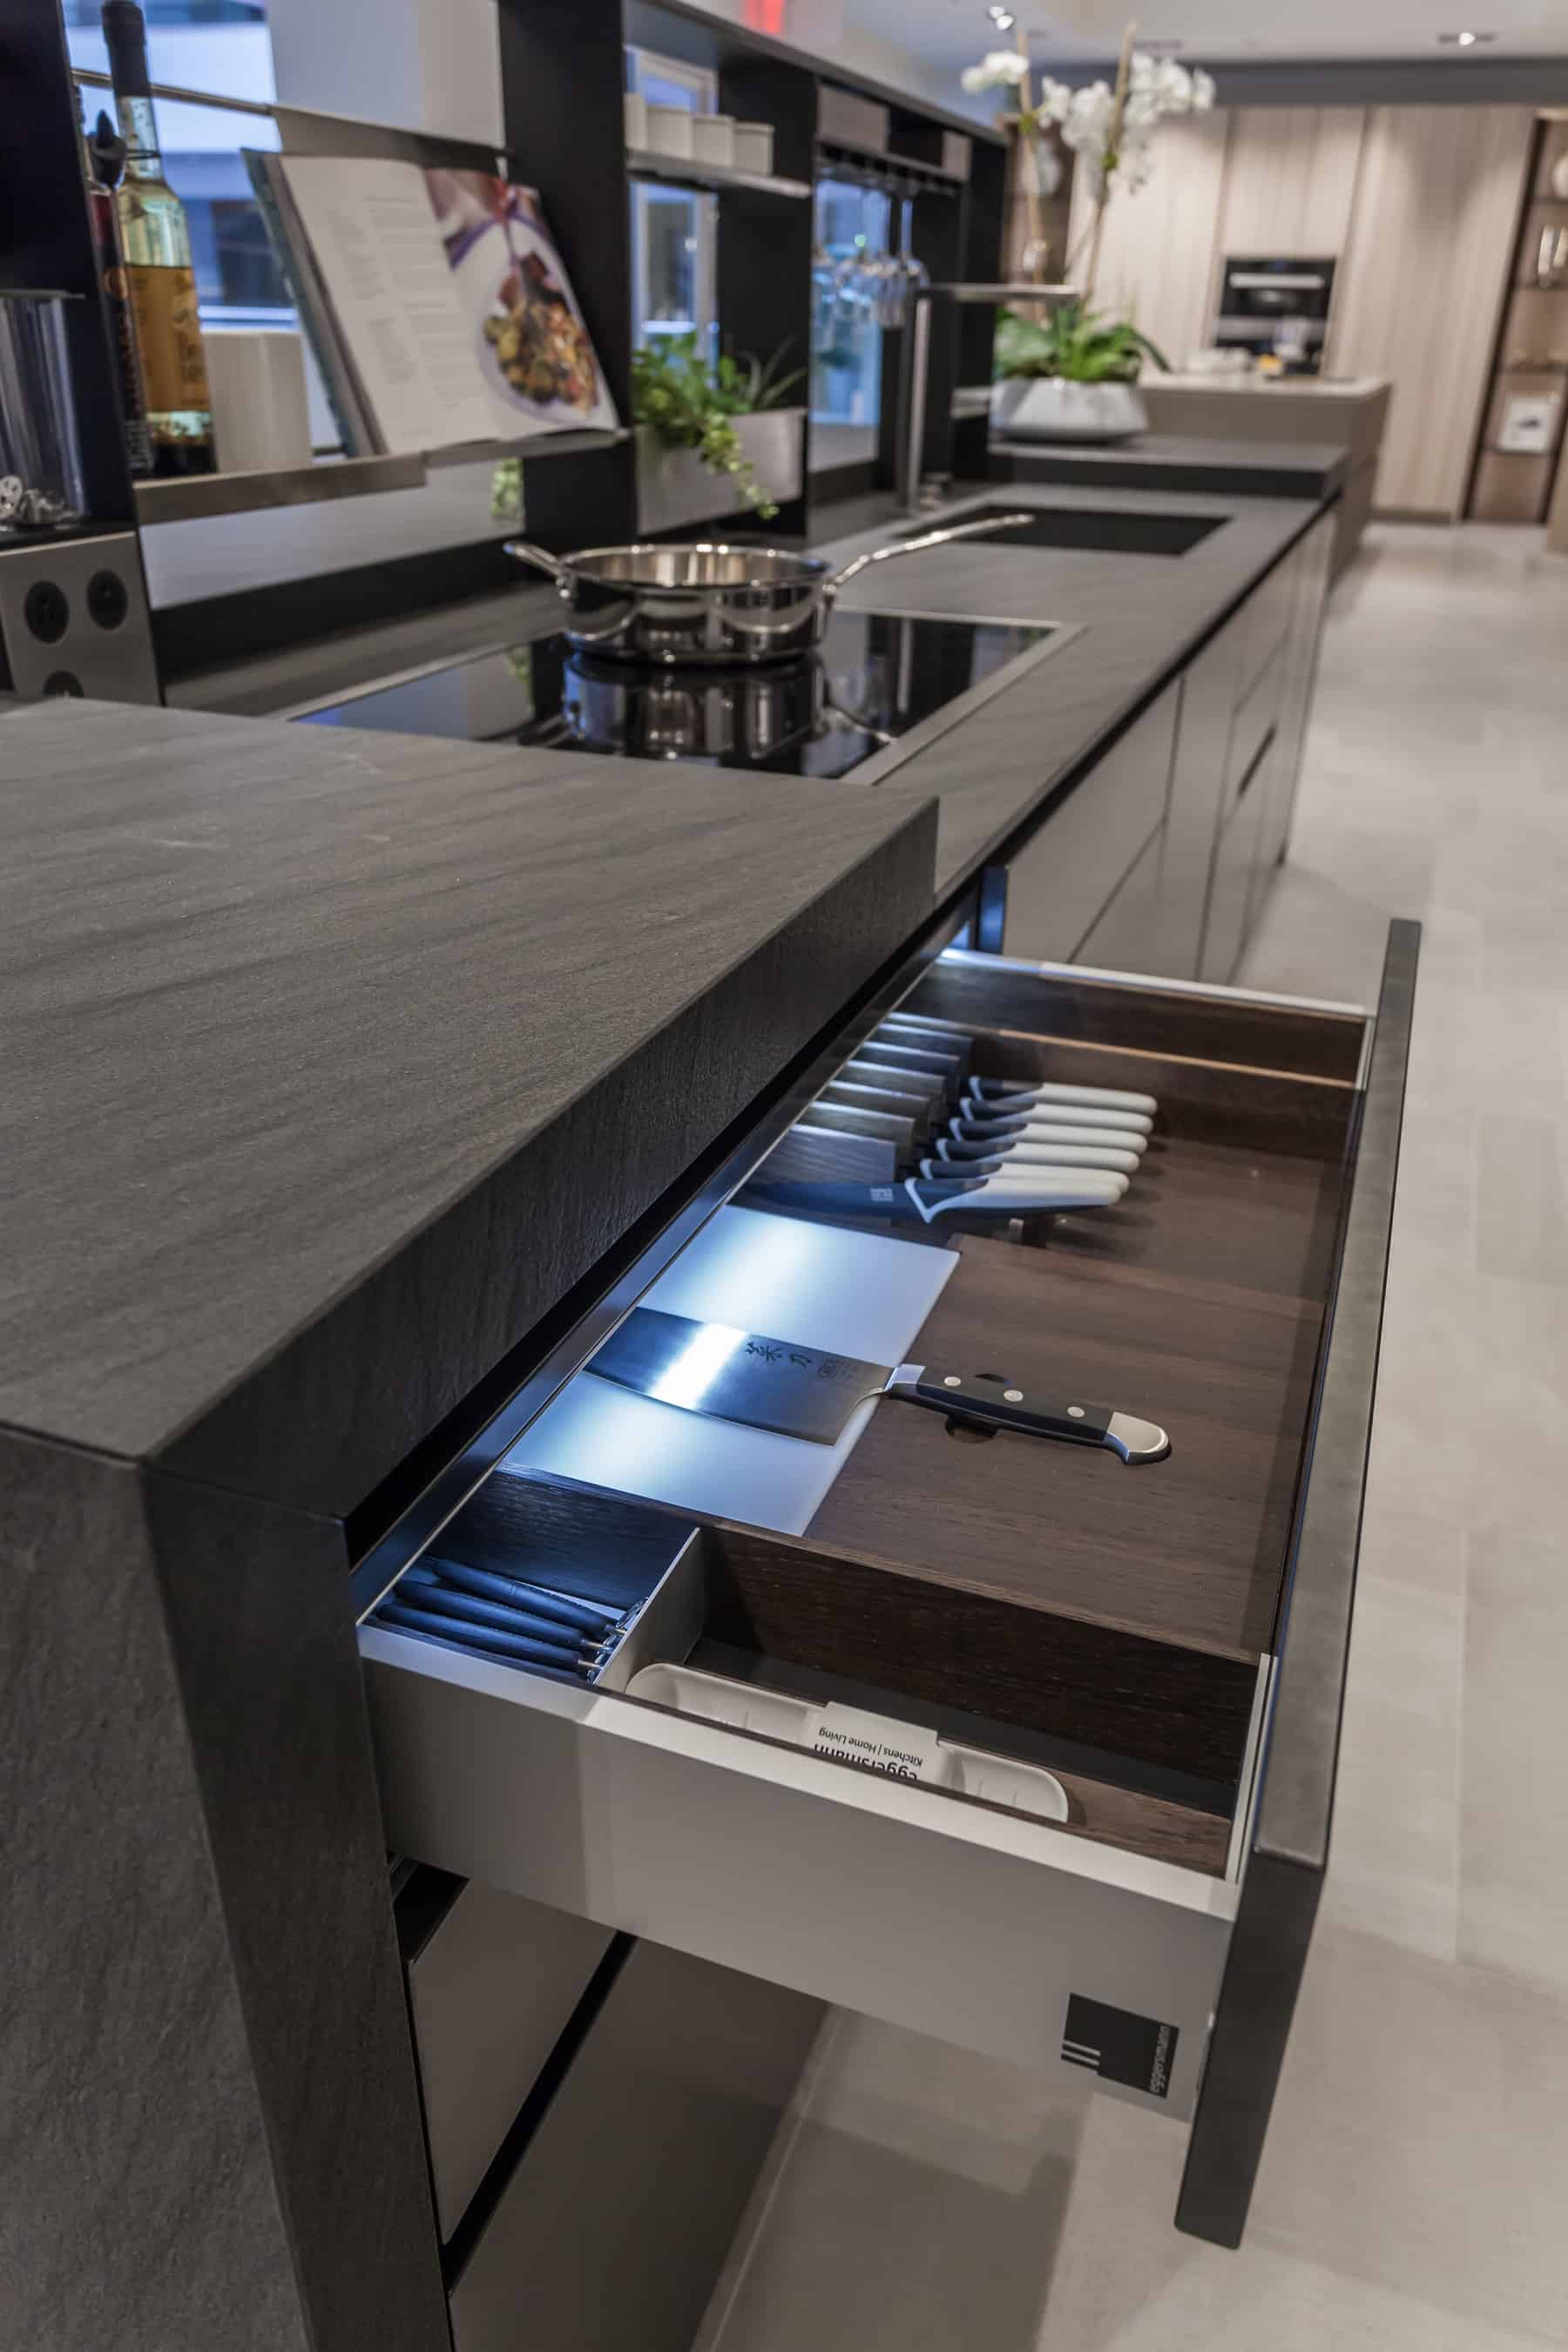 eggersman boxtec drawer organization for knives and cutlery